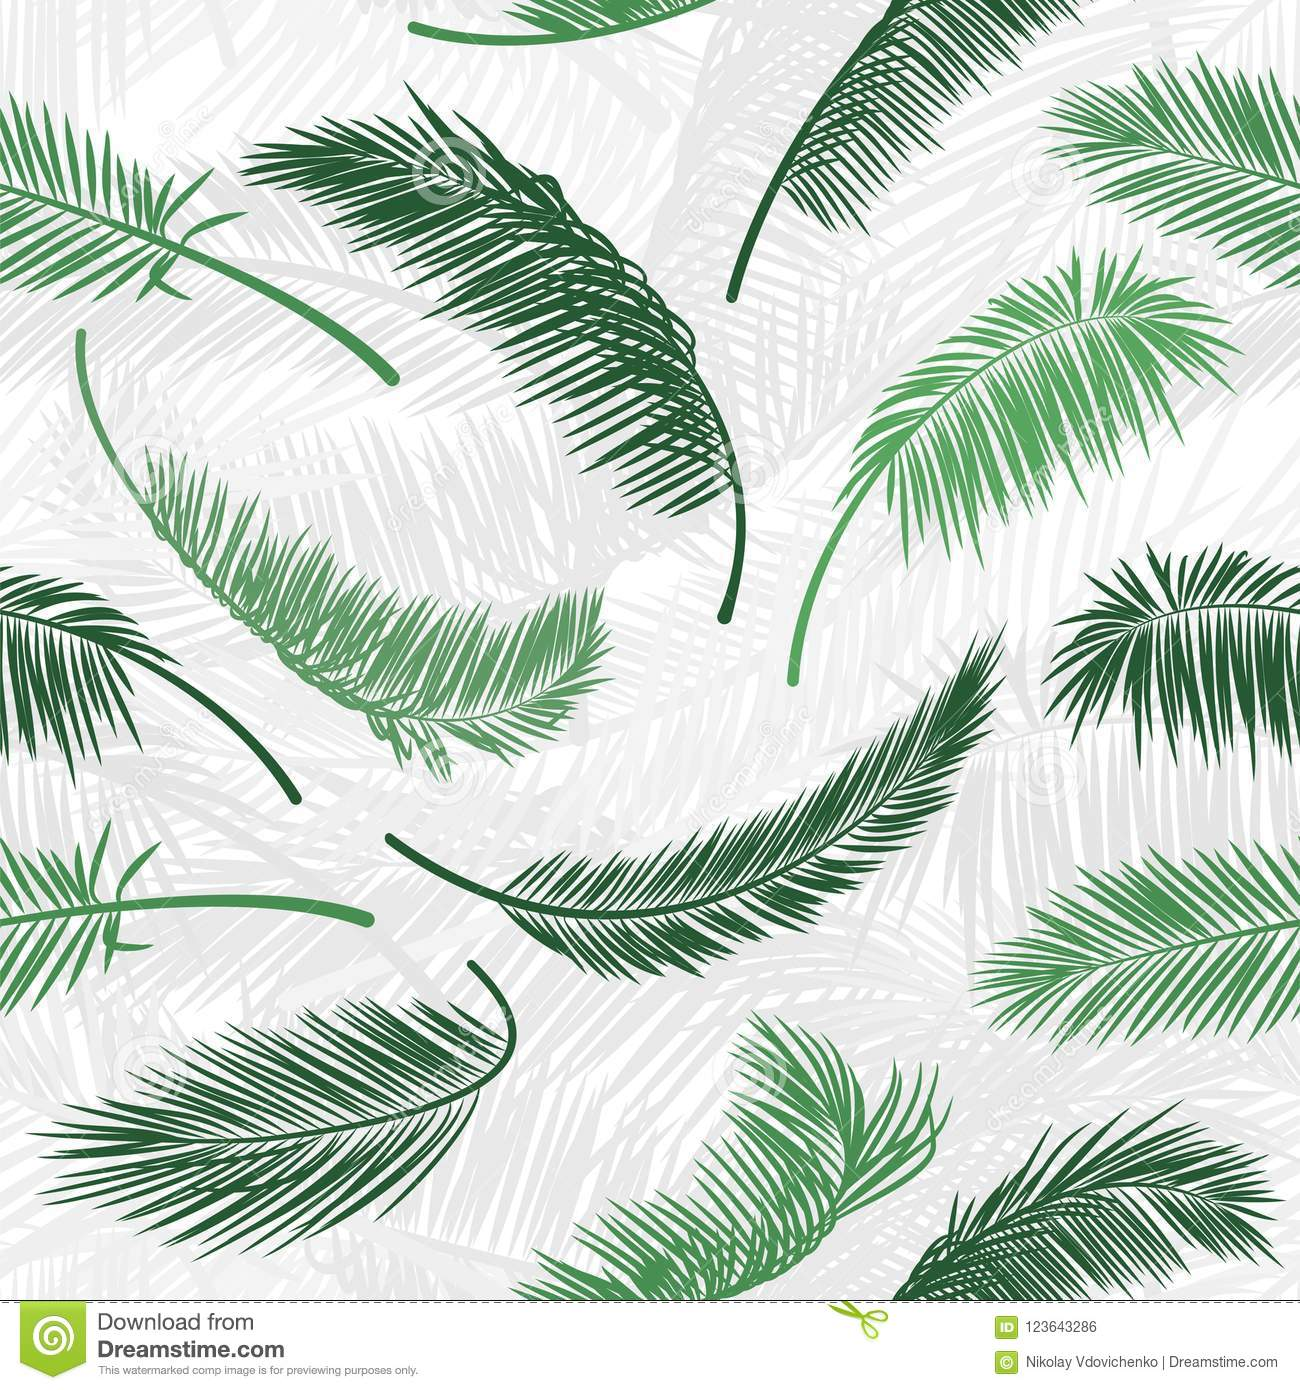 Tropical Green Palm Tree Leaves In Seamless Pattern Vector For Print Design Wallpaper